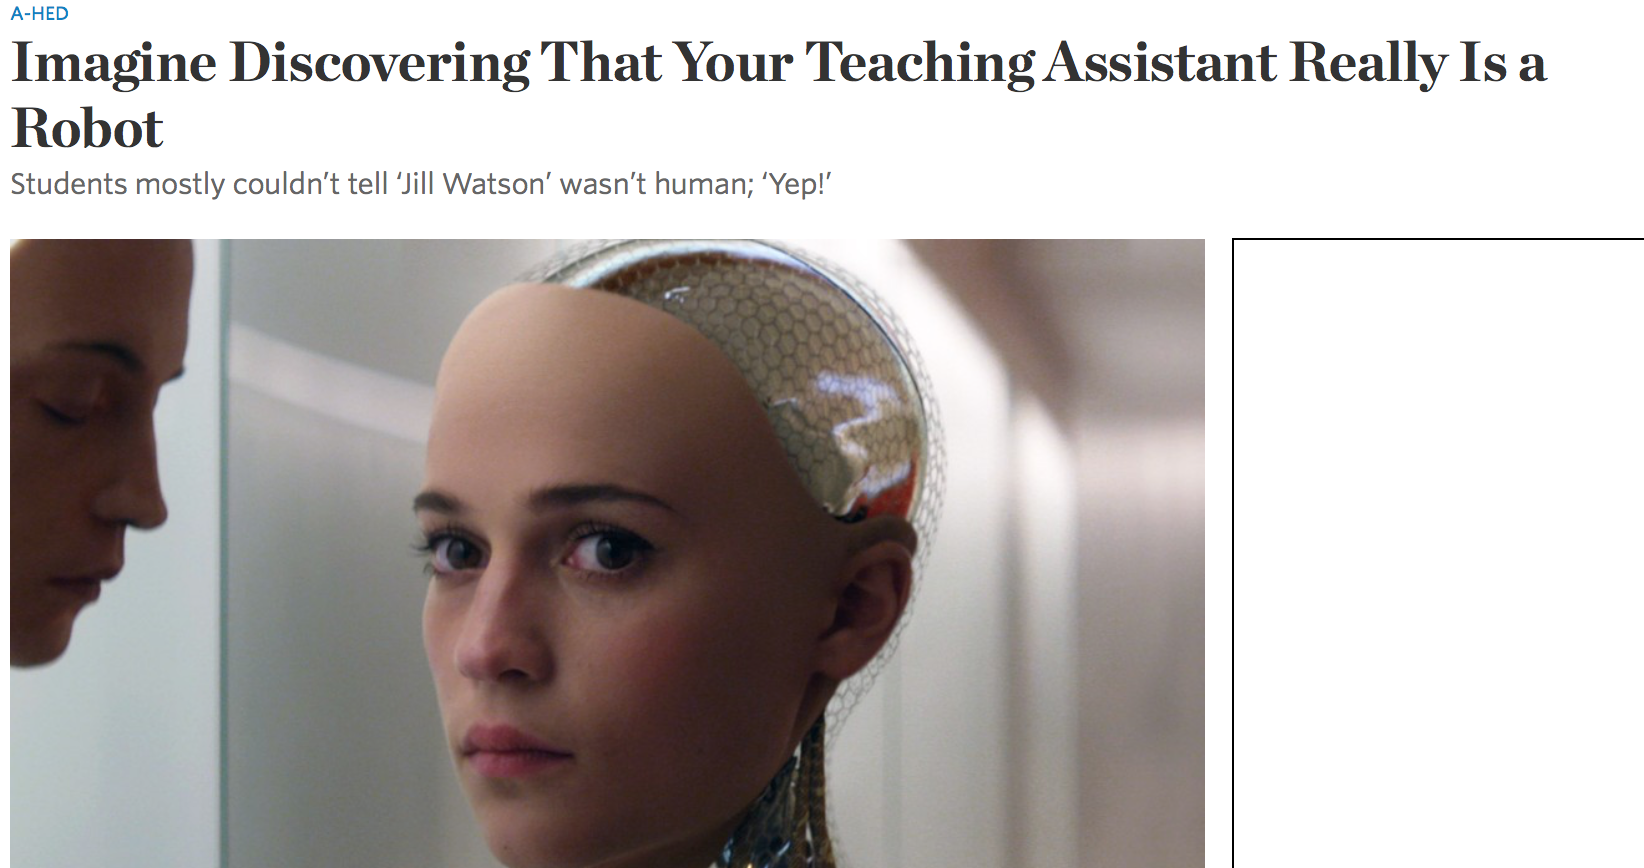 http://www.wsj.com/articles/if-your-teacher-sounds-like-a-robot-you-might-be-on-to-something-1462546621